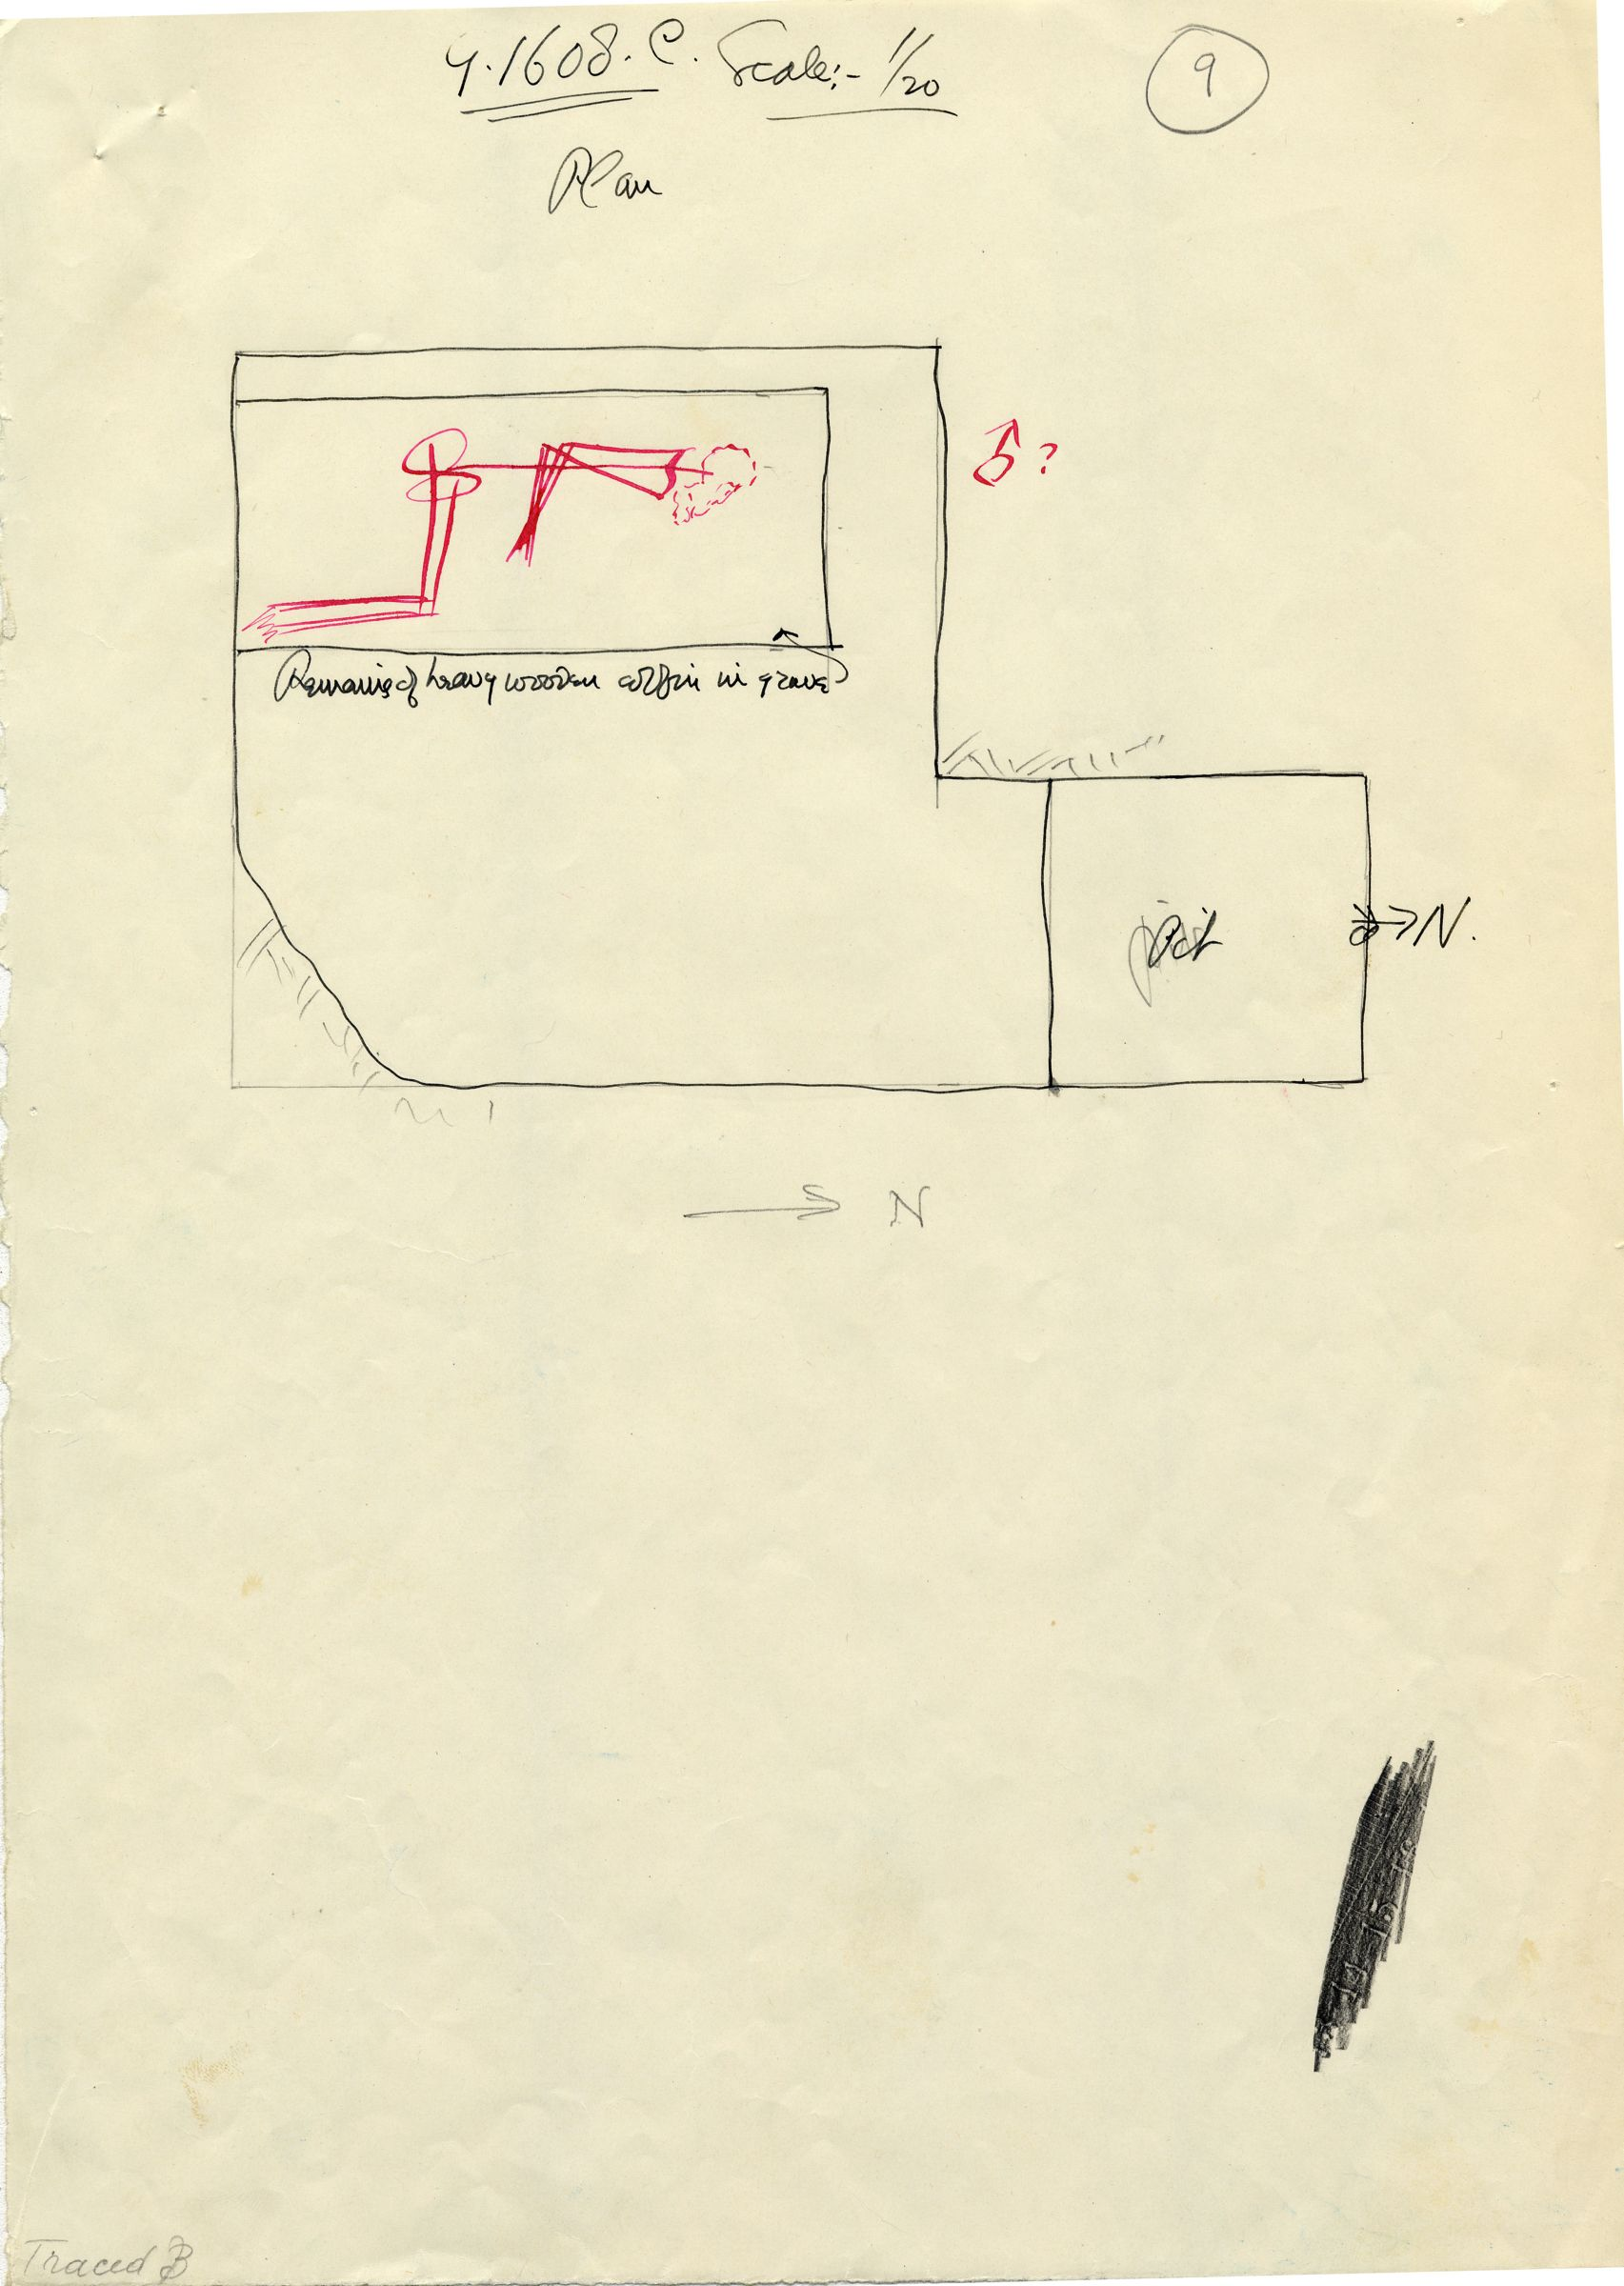 Maps and plans: G 1608, Shaft C